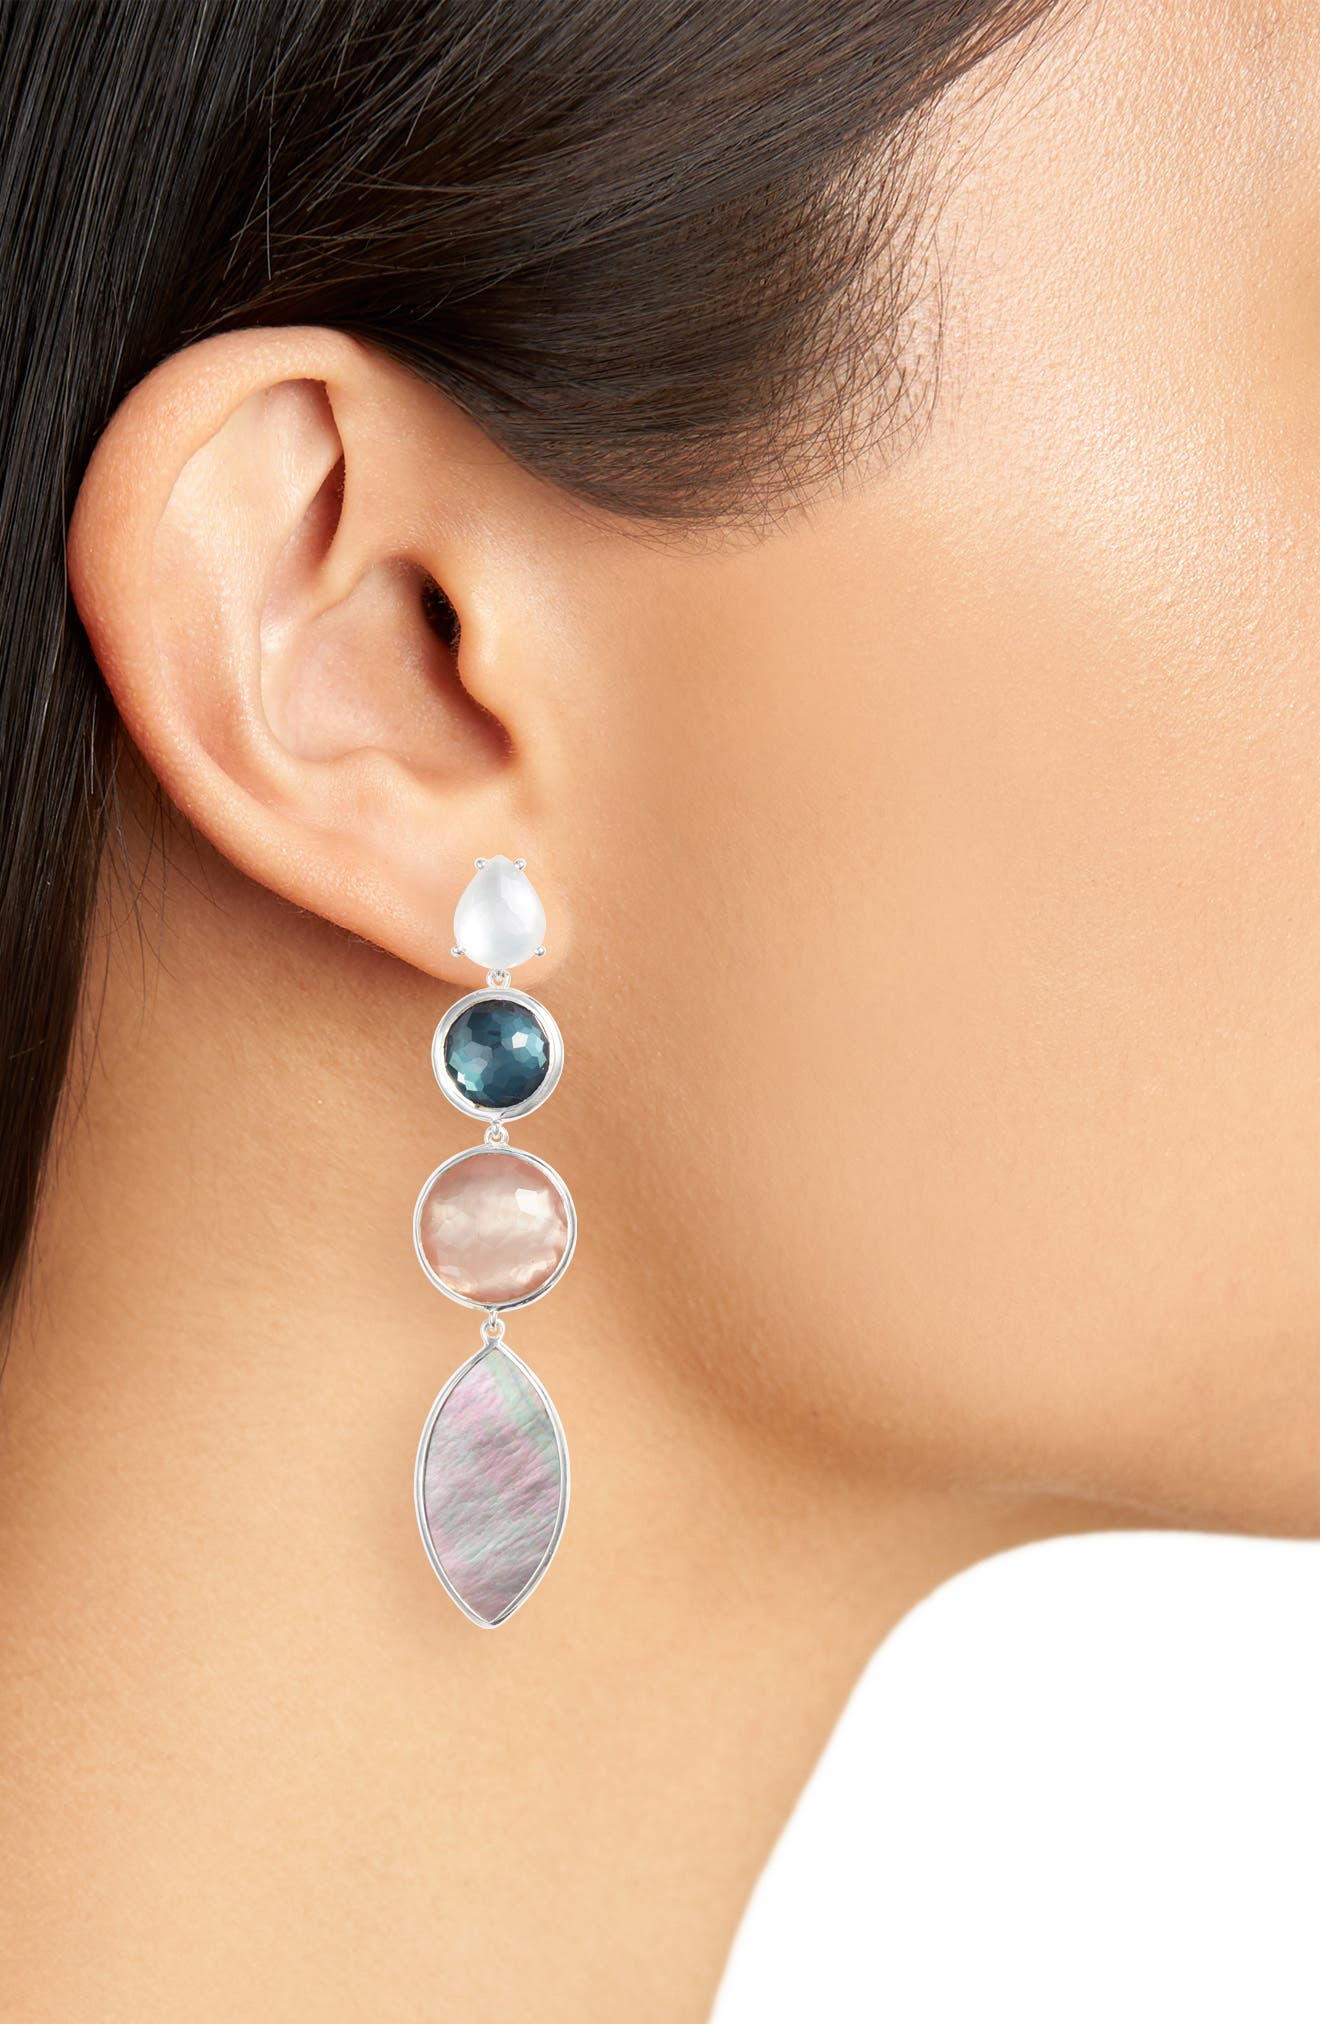 Wonderland Semiprecious Stone Linear Drop Earrings,                             Alternate thumbnail 2, color,                             MORODUSK